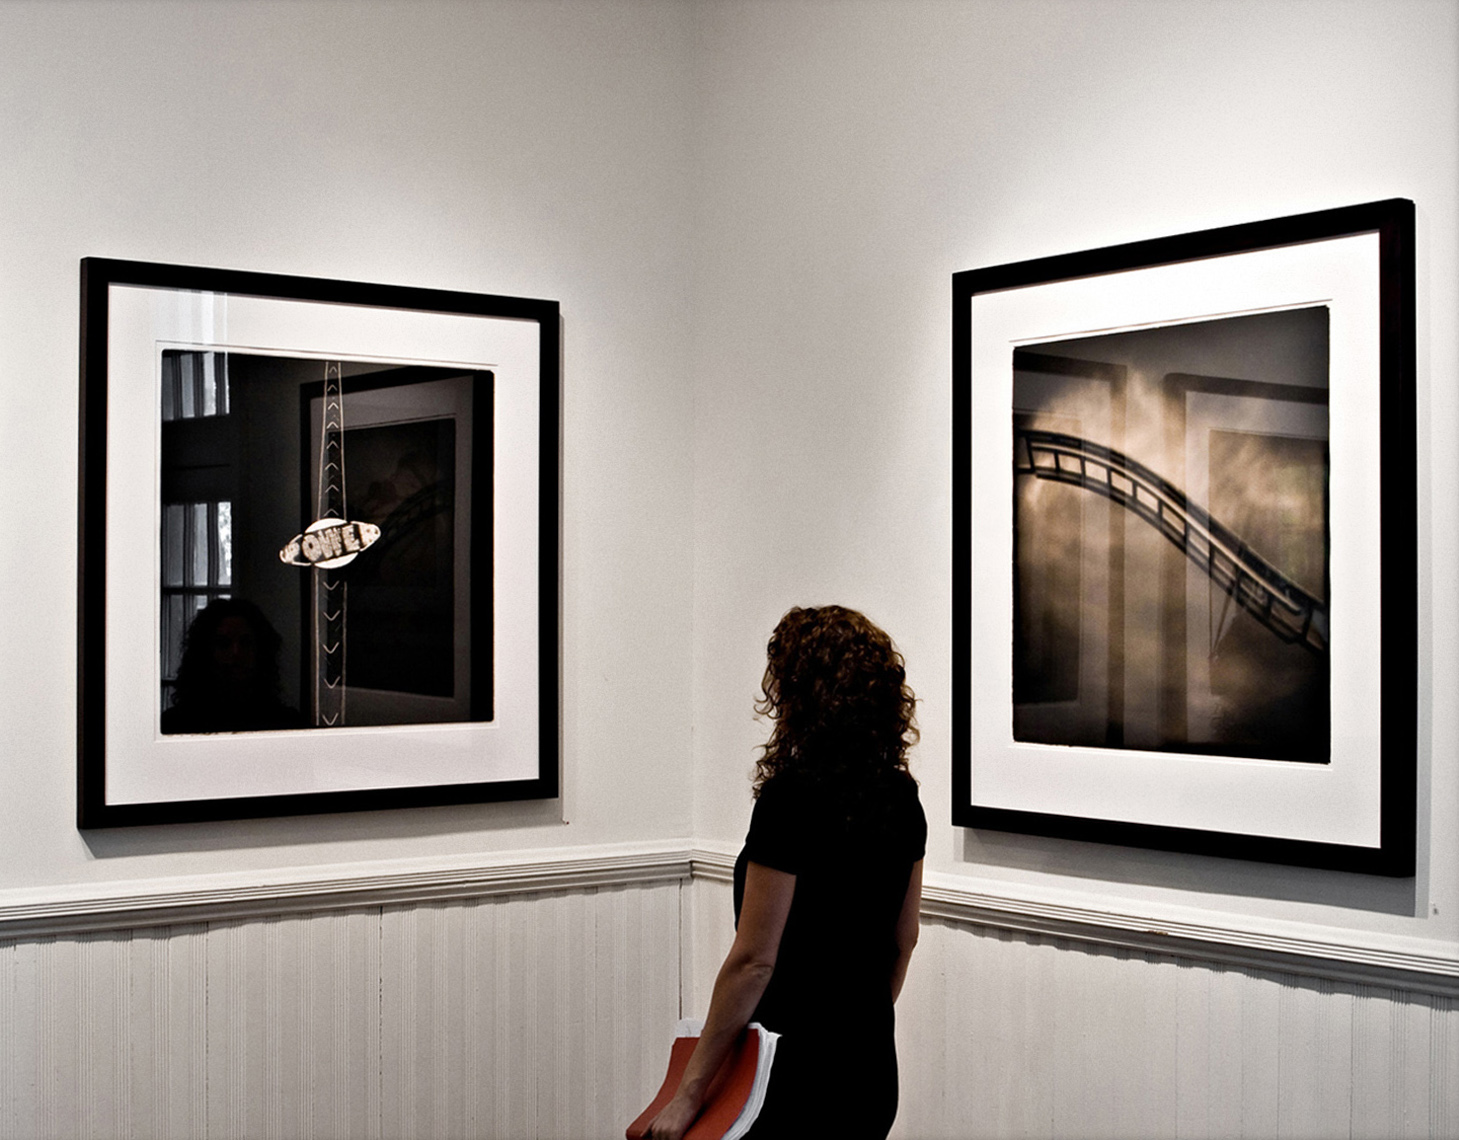 Sean Perry Photographs • Fairgrounds Installation, Stephen L. Clark Gallery